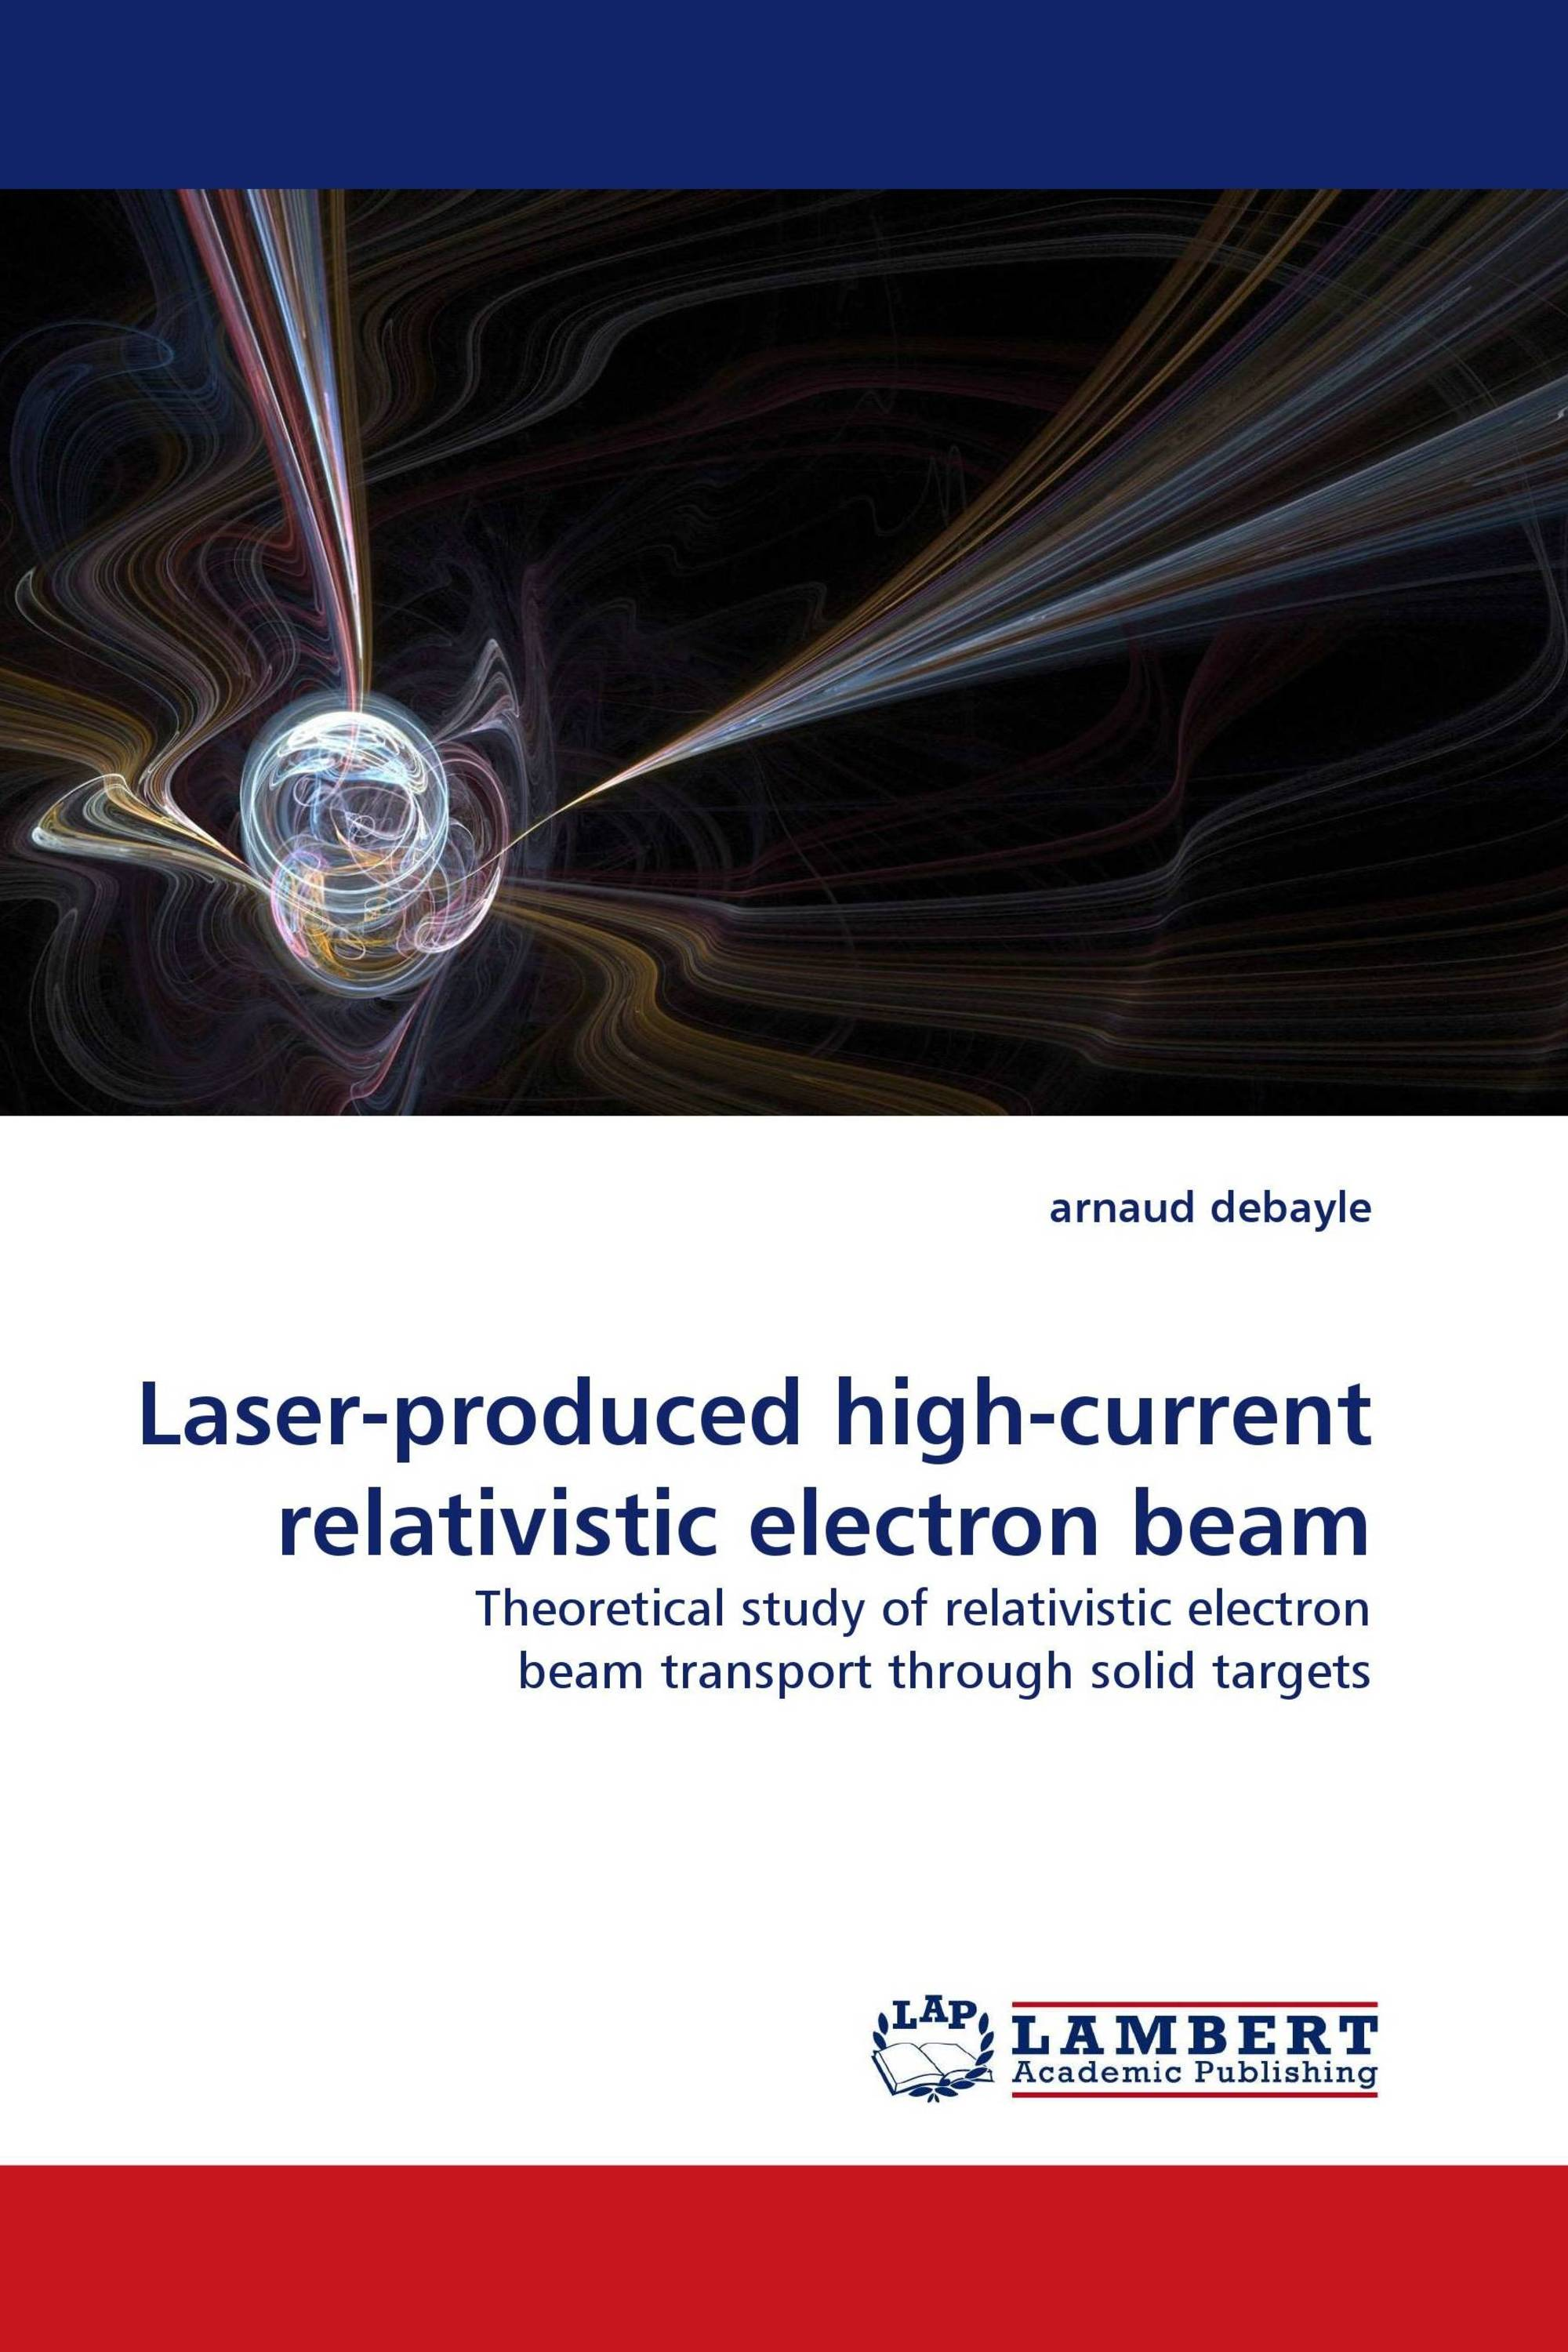 Laser-produced high-current relativistic electron beam